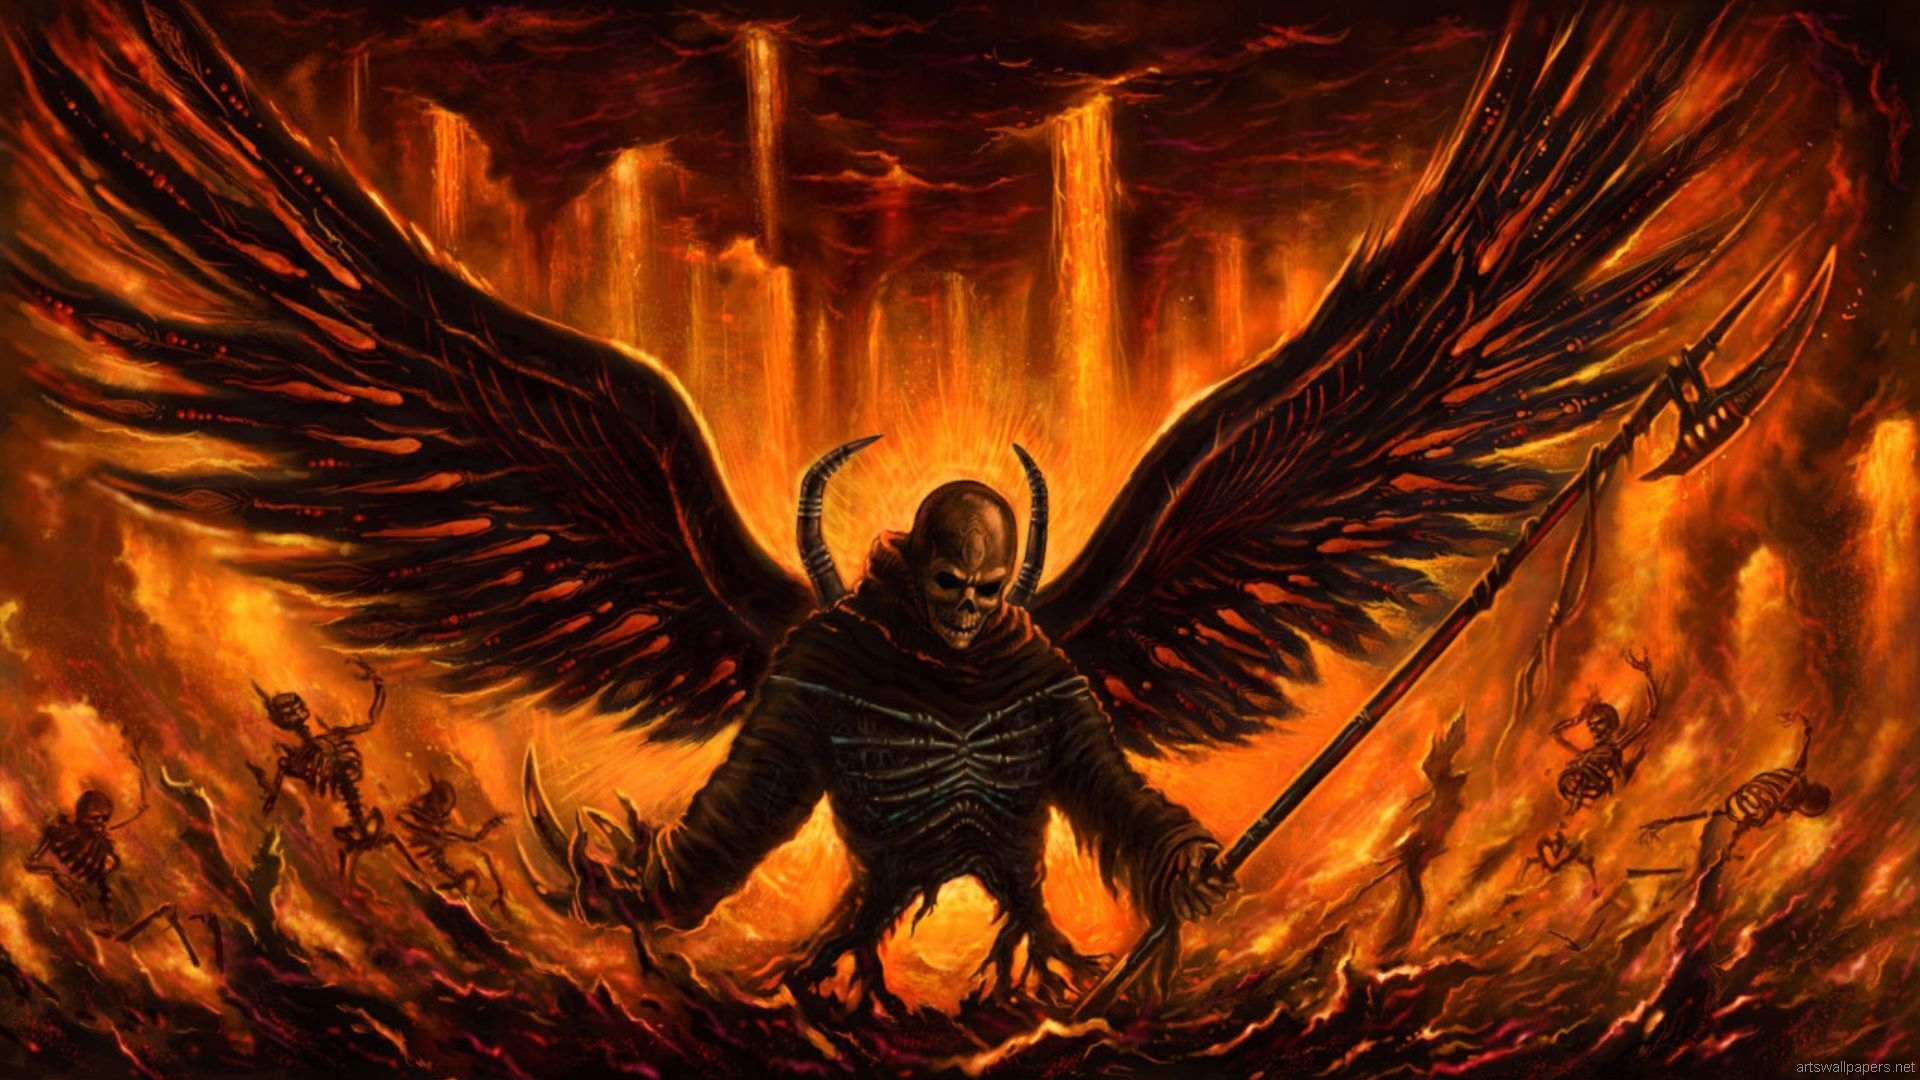 Angel hd wallpaper background image 1920x1080 id - Devil skull wallpaper ...